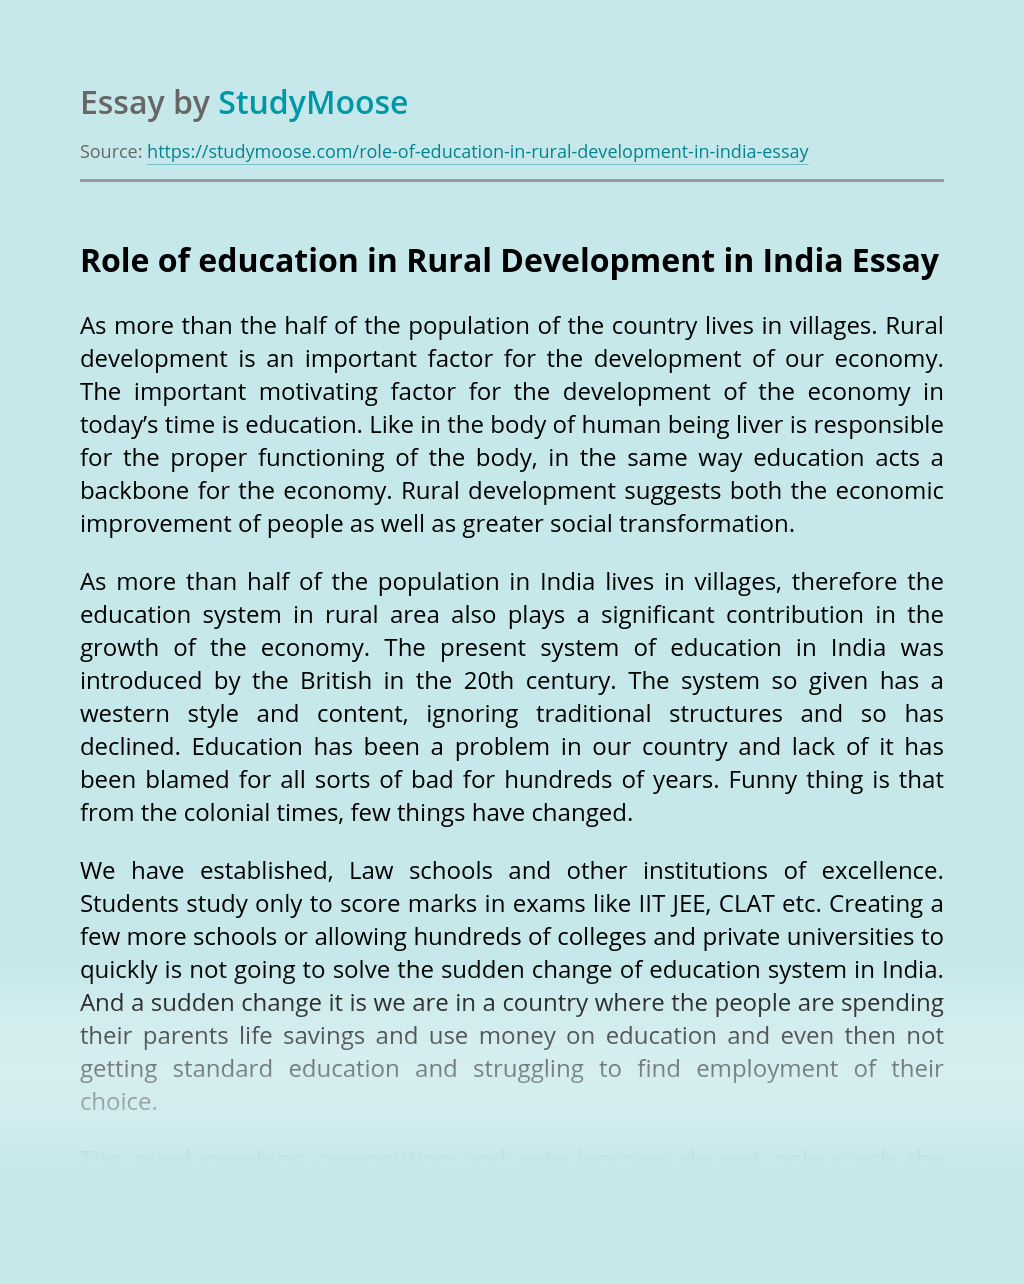 Role of education in Rural Development in India